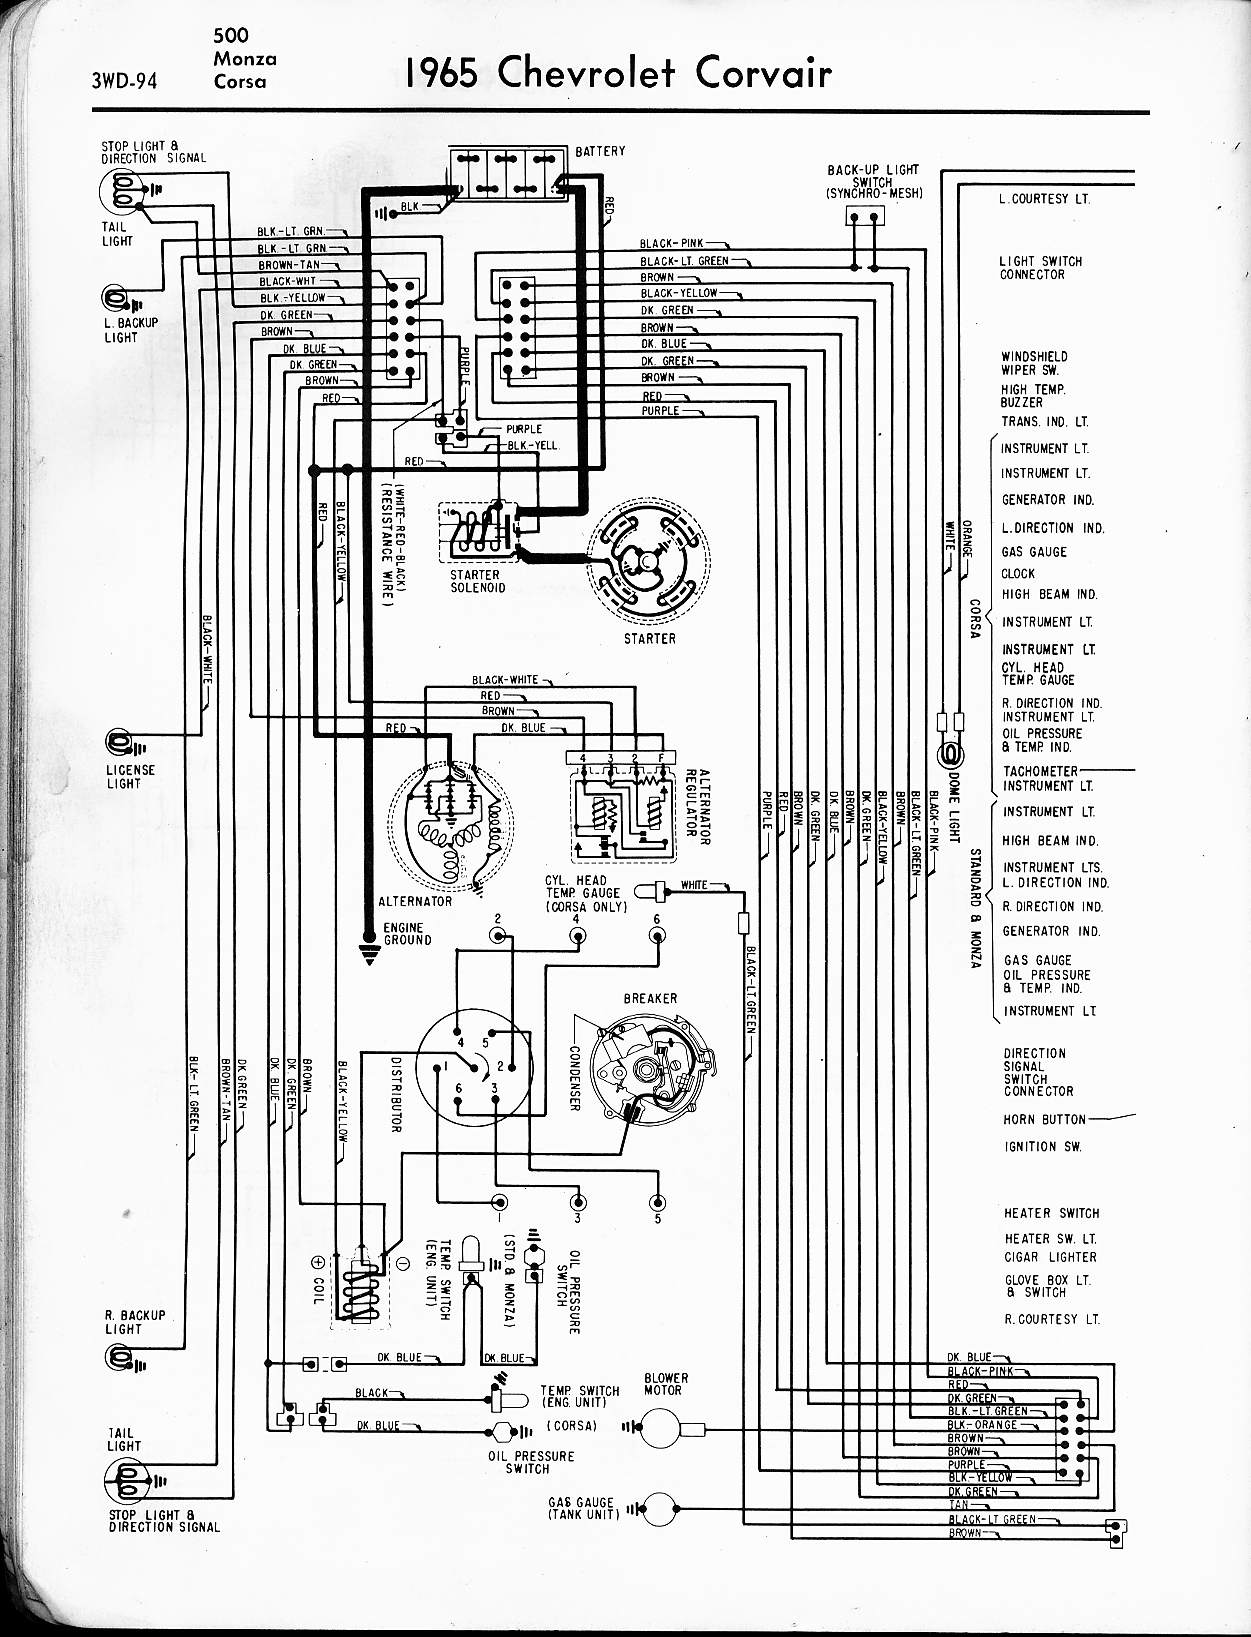 1965 Chevy Starter Wiring Diagram Great Installation Of 78 Chevrolet Pickup 350 Ignition Coil 65 Chevelle Diagrams Rh 37 Treatchildtrauma De 72